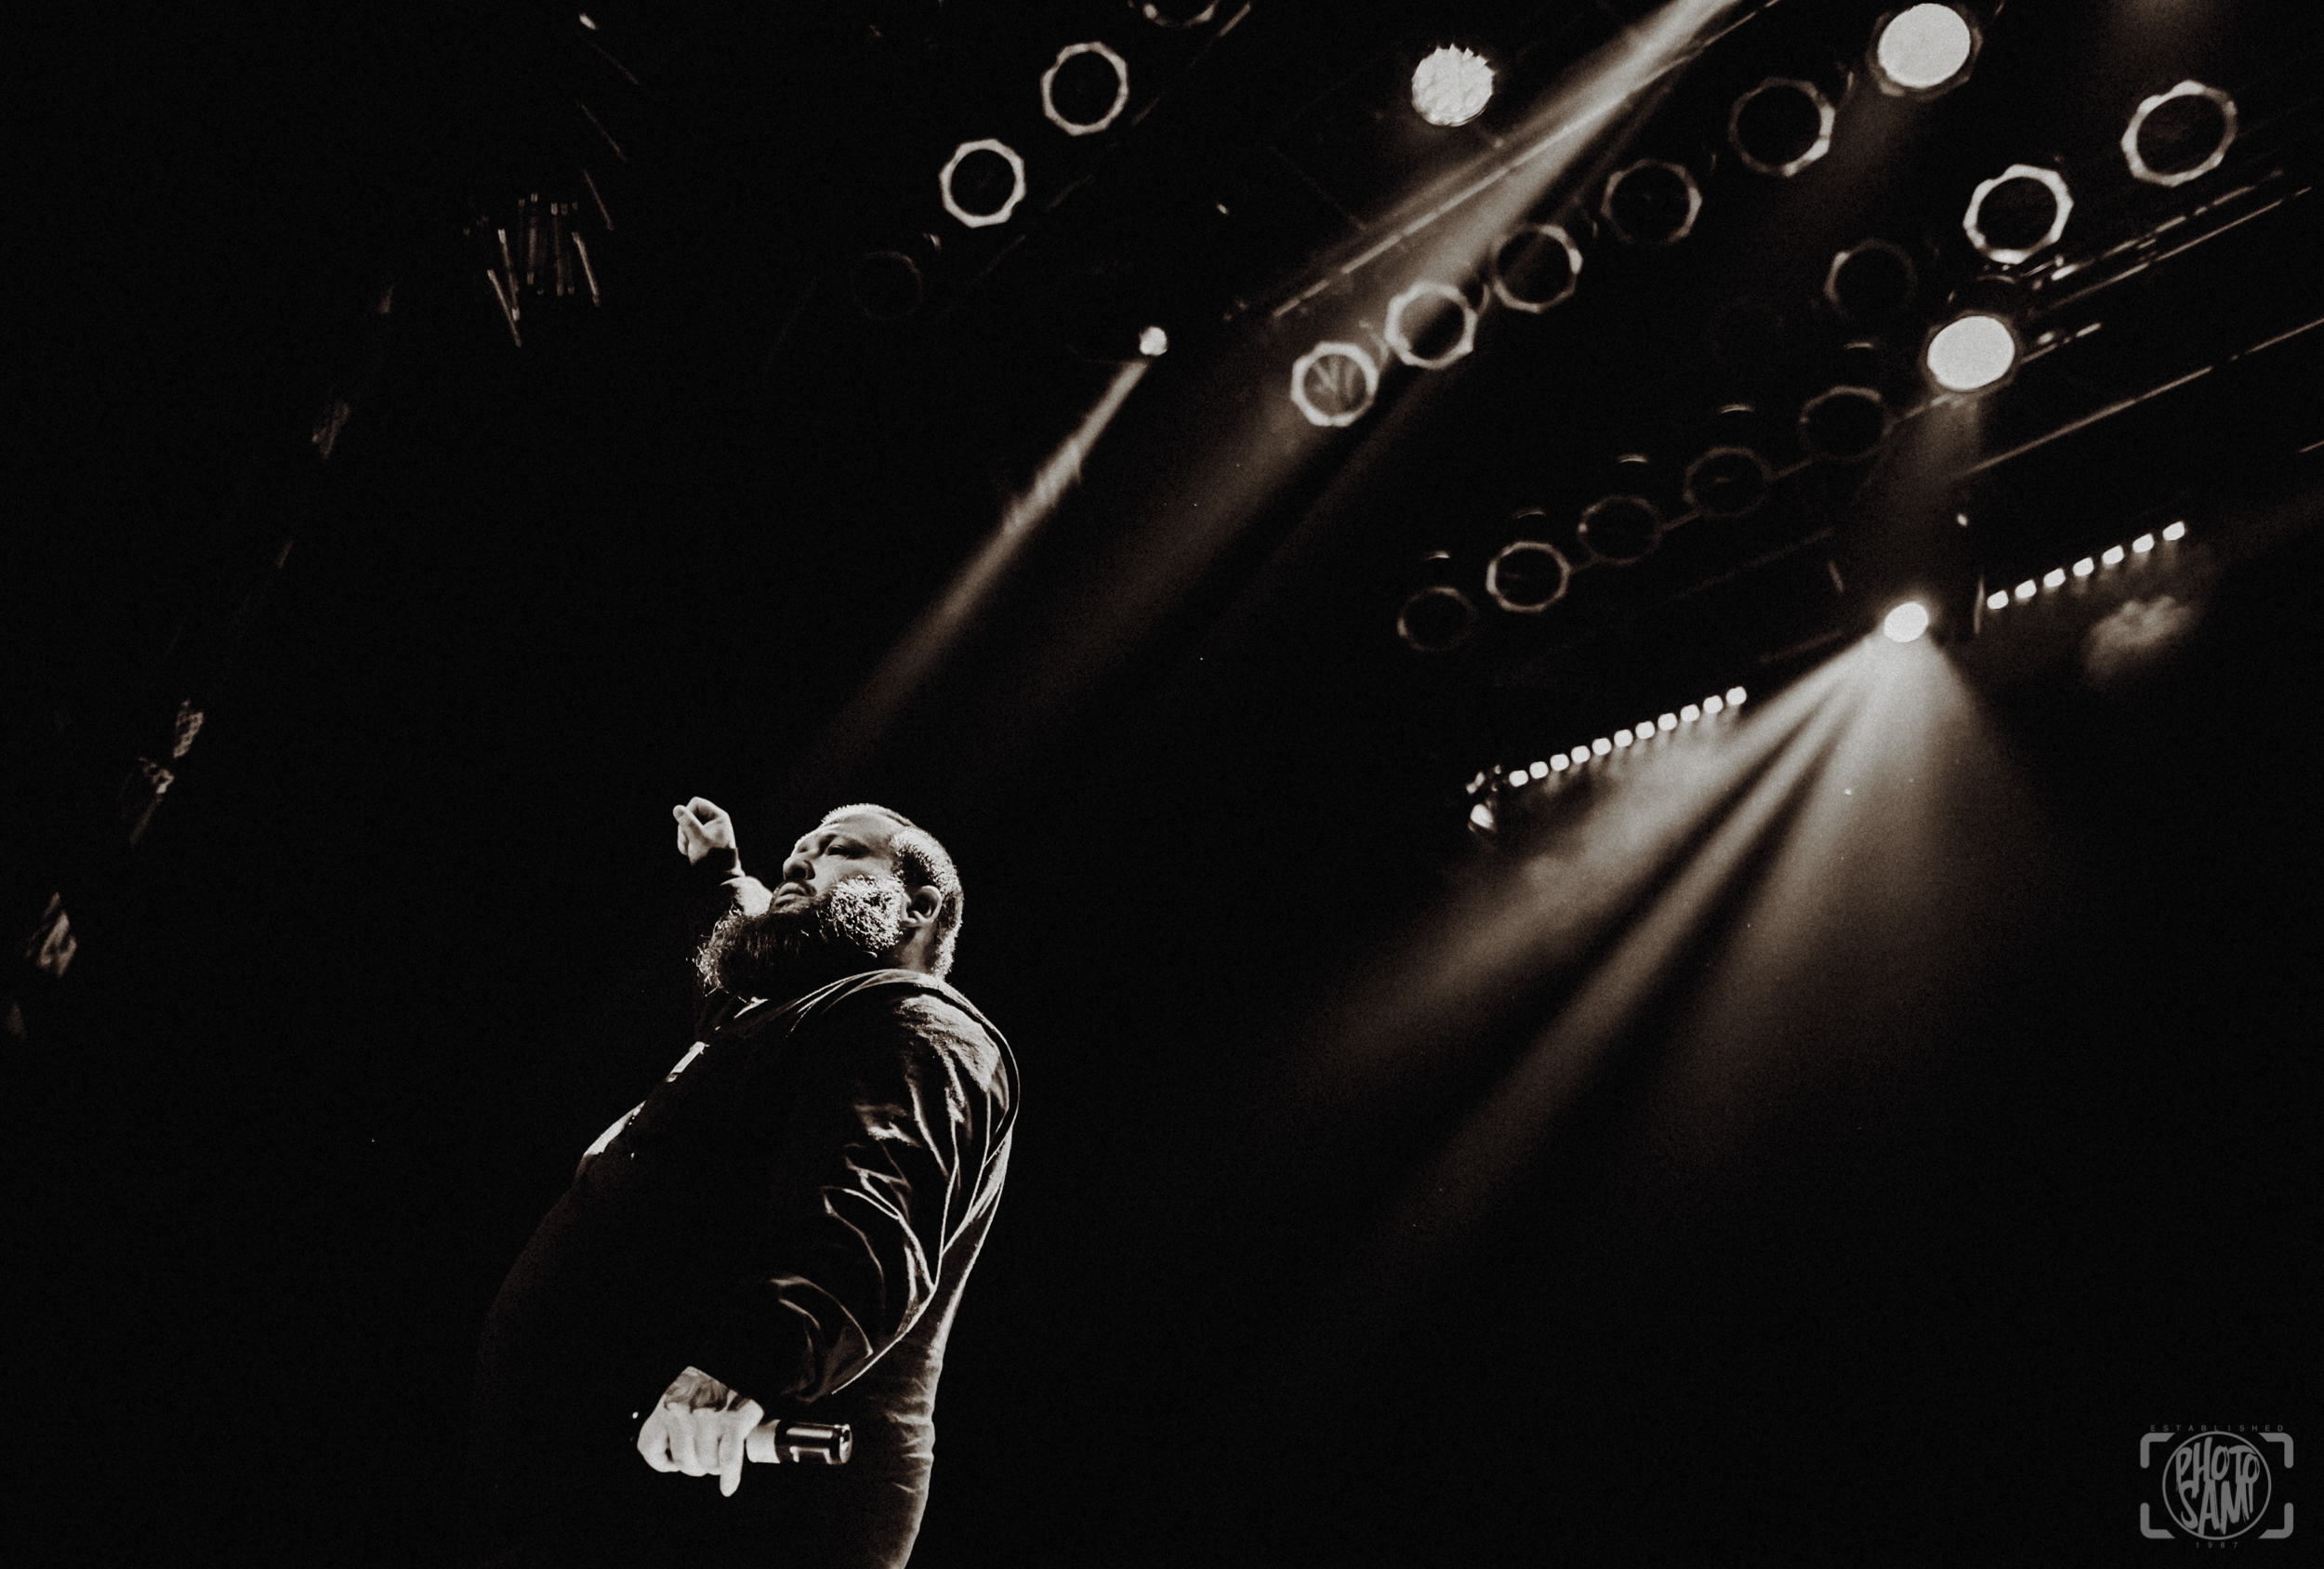 PHOTO GALLERY: Action Bronson puts on a LEGENDARY performance in San Diego